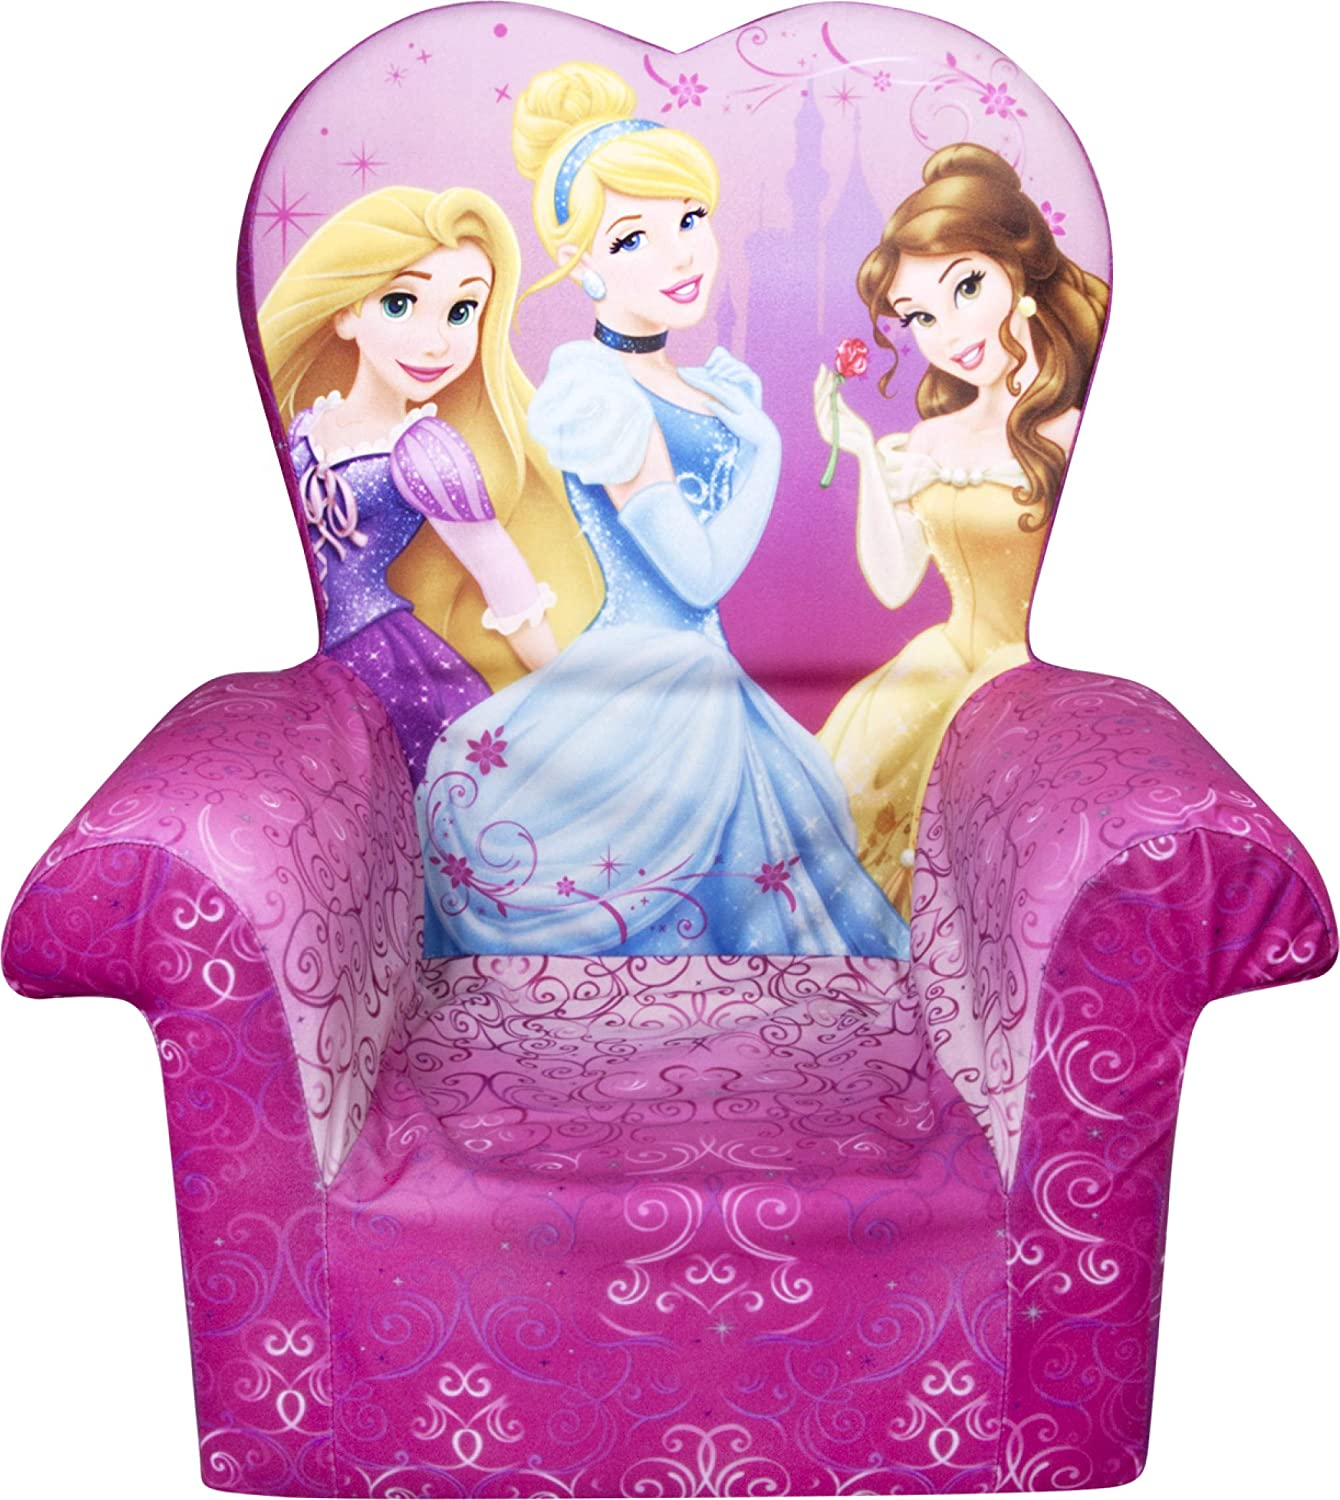 Marshmallow Furniture Children's Toddler Foam High Back Chair for Ages 18 Months and Up, Disney Princesses